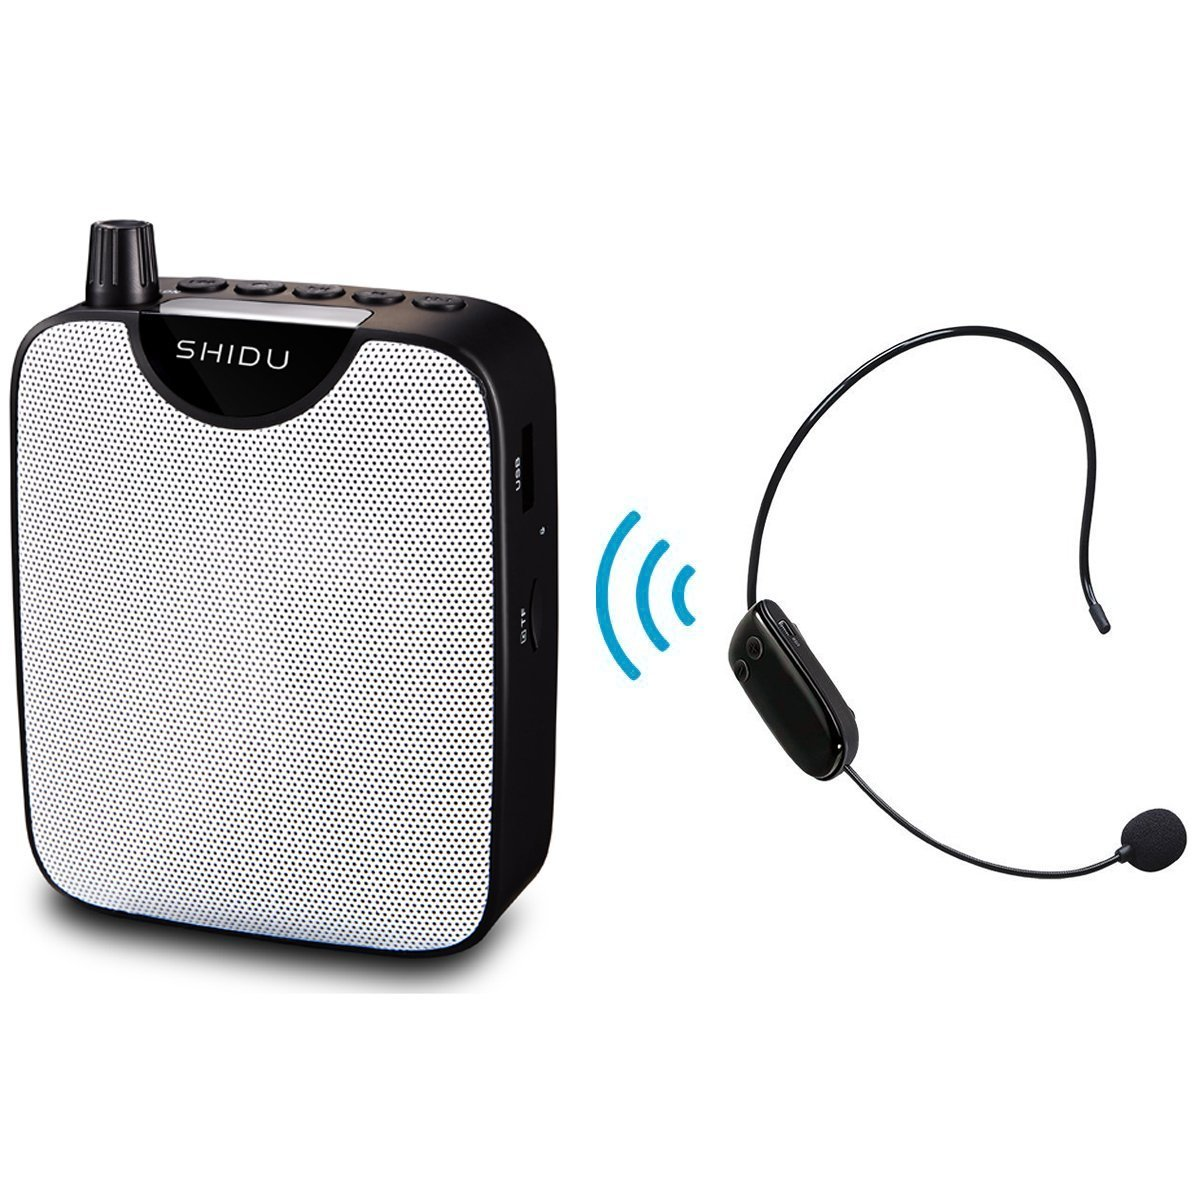 Bluetooth Portable Voice Amplifier, SHIDU Rechargeable Mini PA System with UHF Wireless Headset Microphone, Recording Function, U Disk/TF for Speaker, Guide, Trianer, Teacher, Coach, Presenter